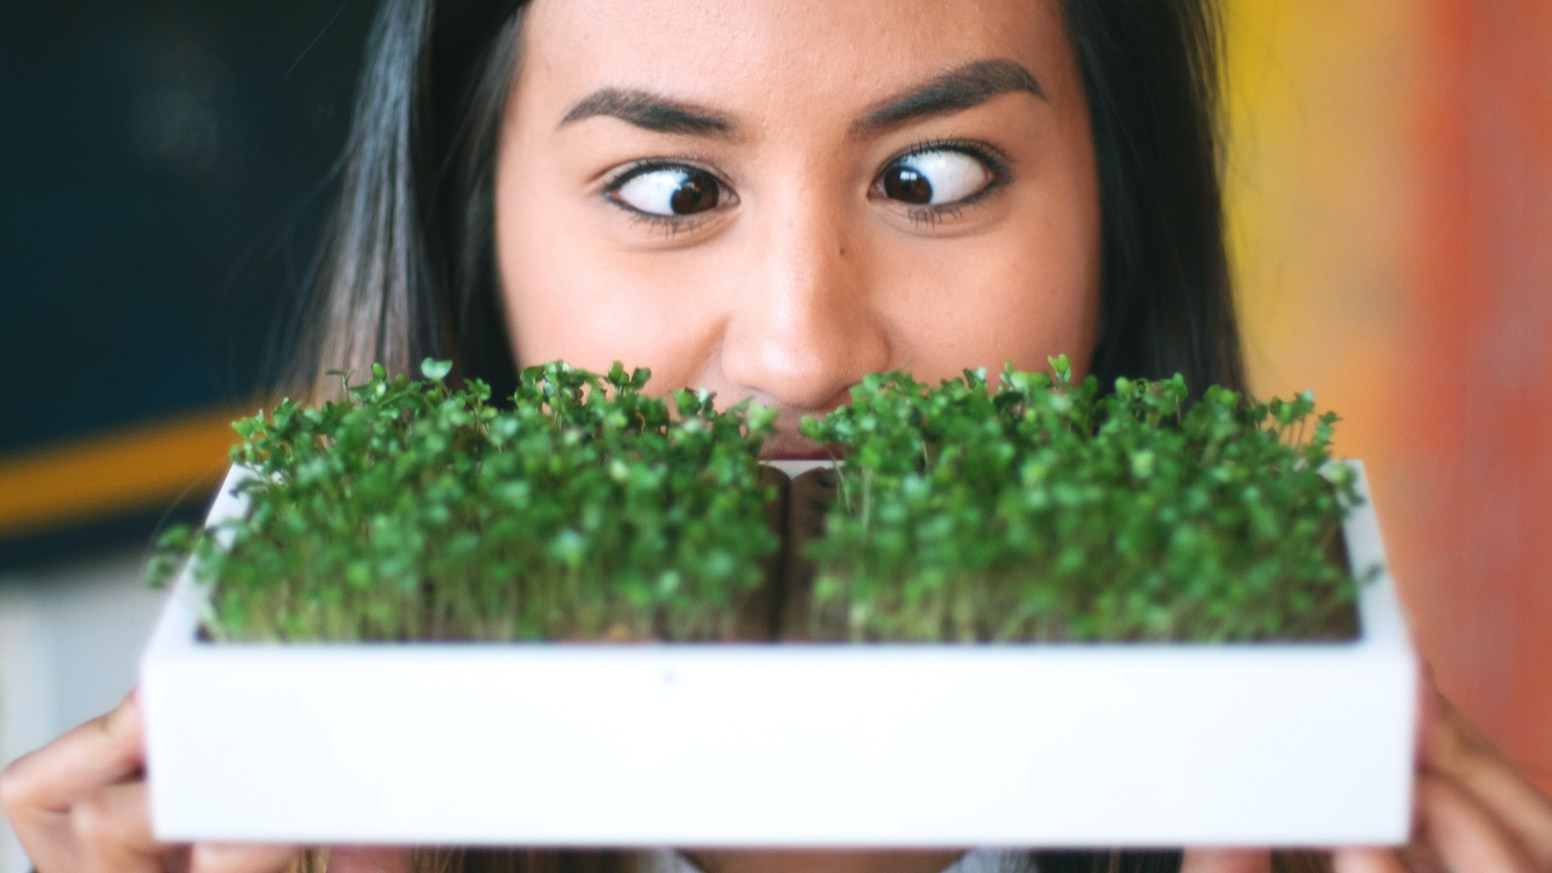 Compact, Sustainable Home MicroGarden. HomeGrown Veggies Up to 40x MORE Nutritious, Affordably, and Easily.